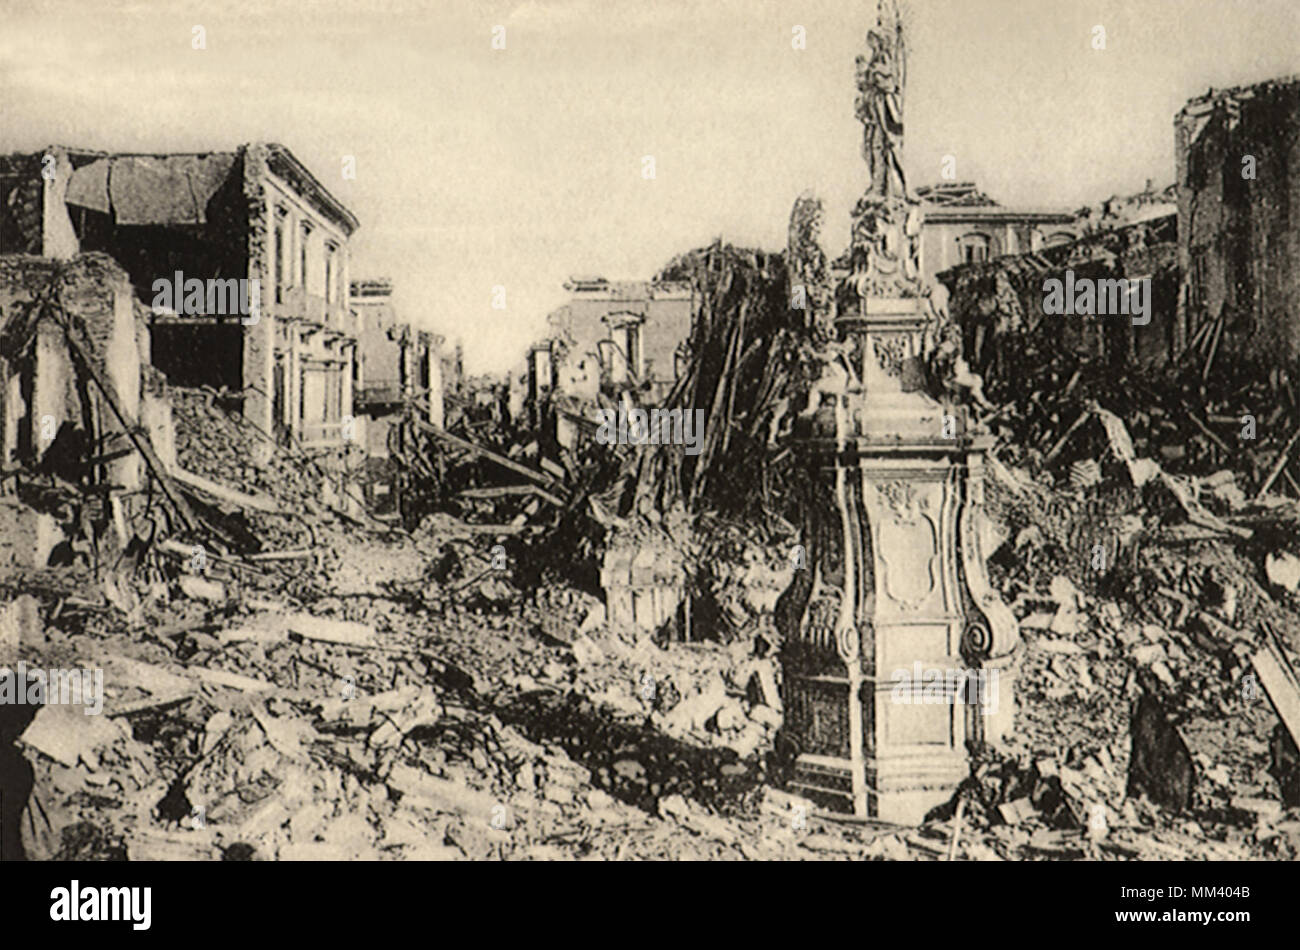 Ruins after 1908 Disaster. Messina. 1908 - Stock Image